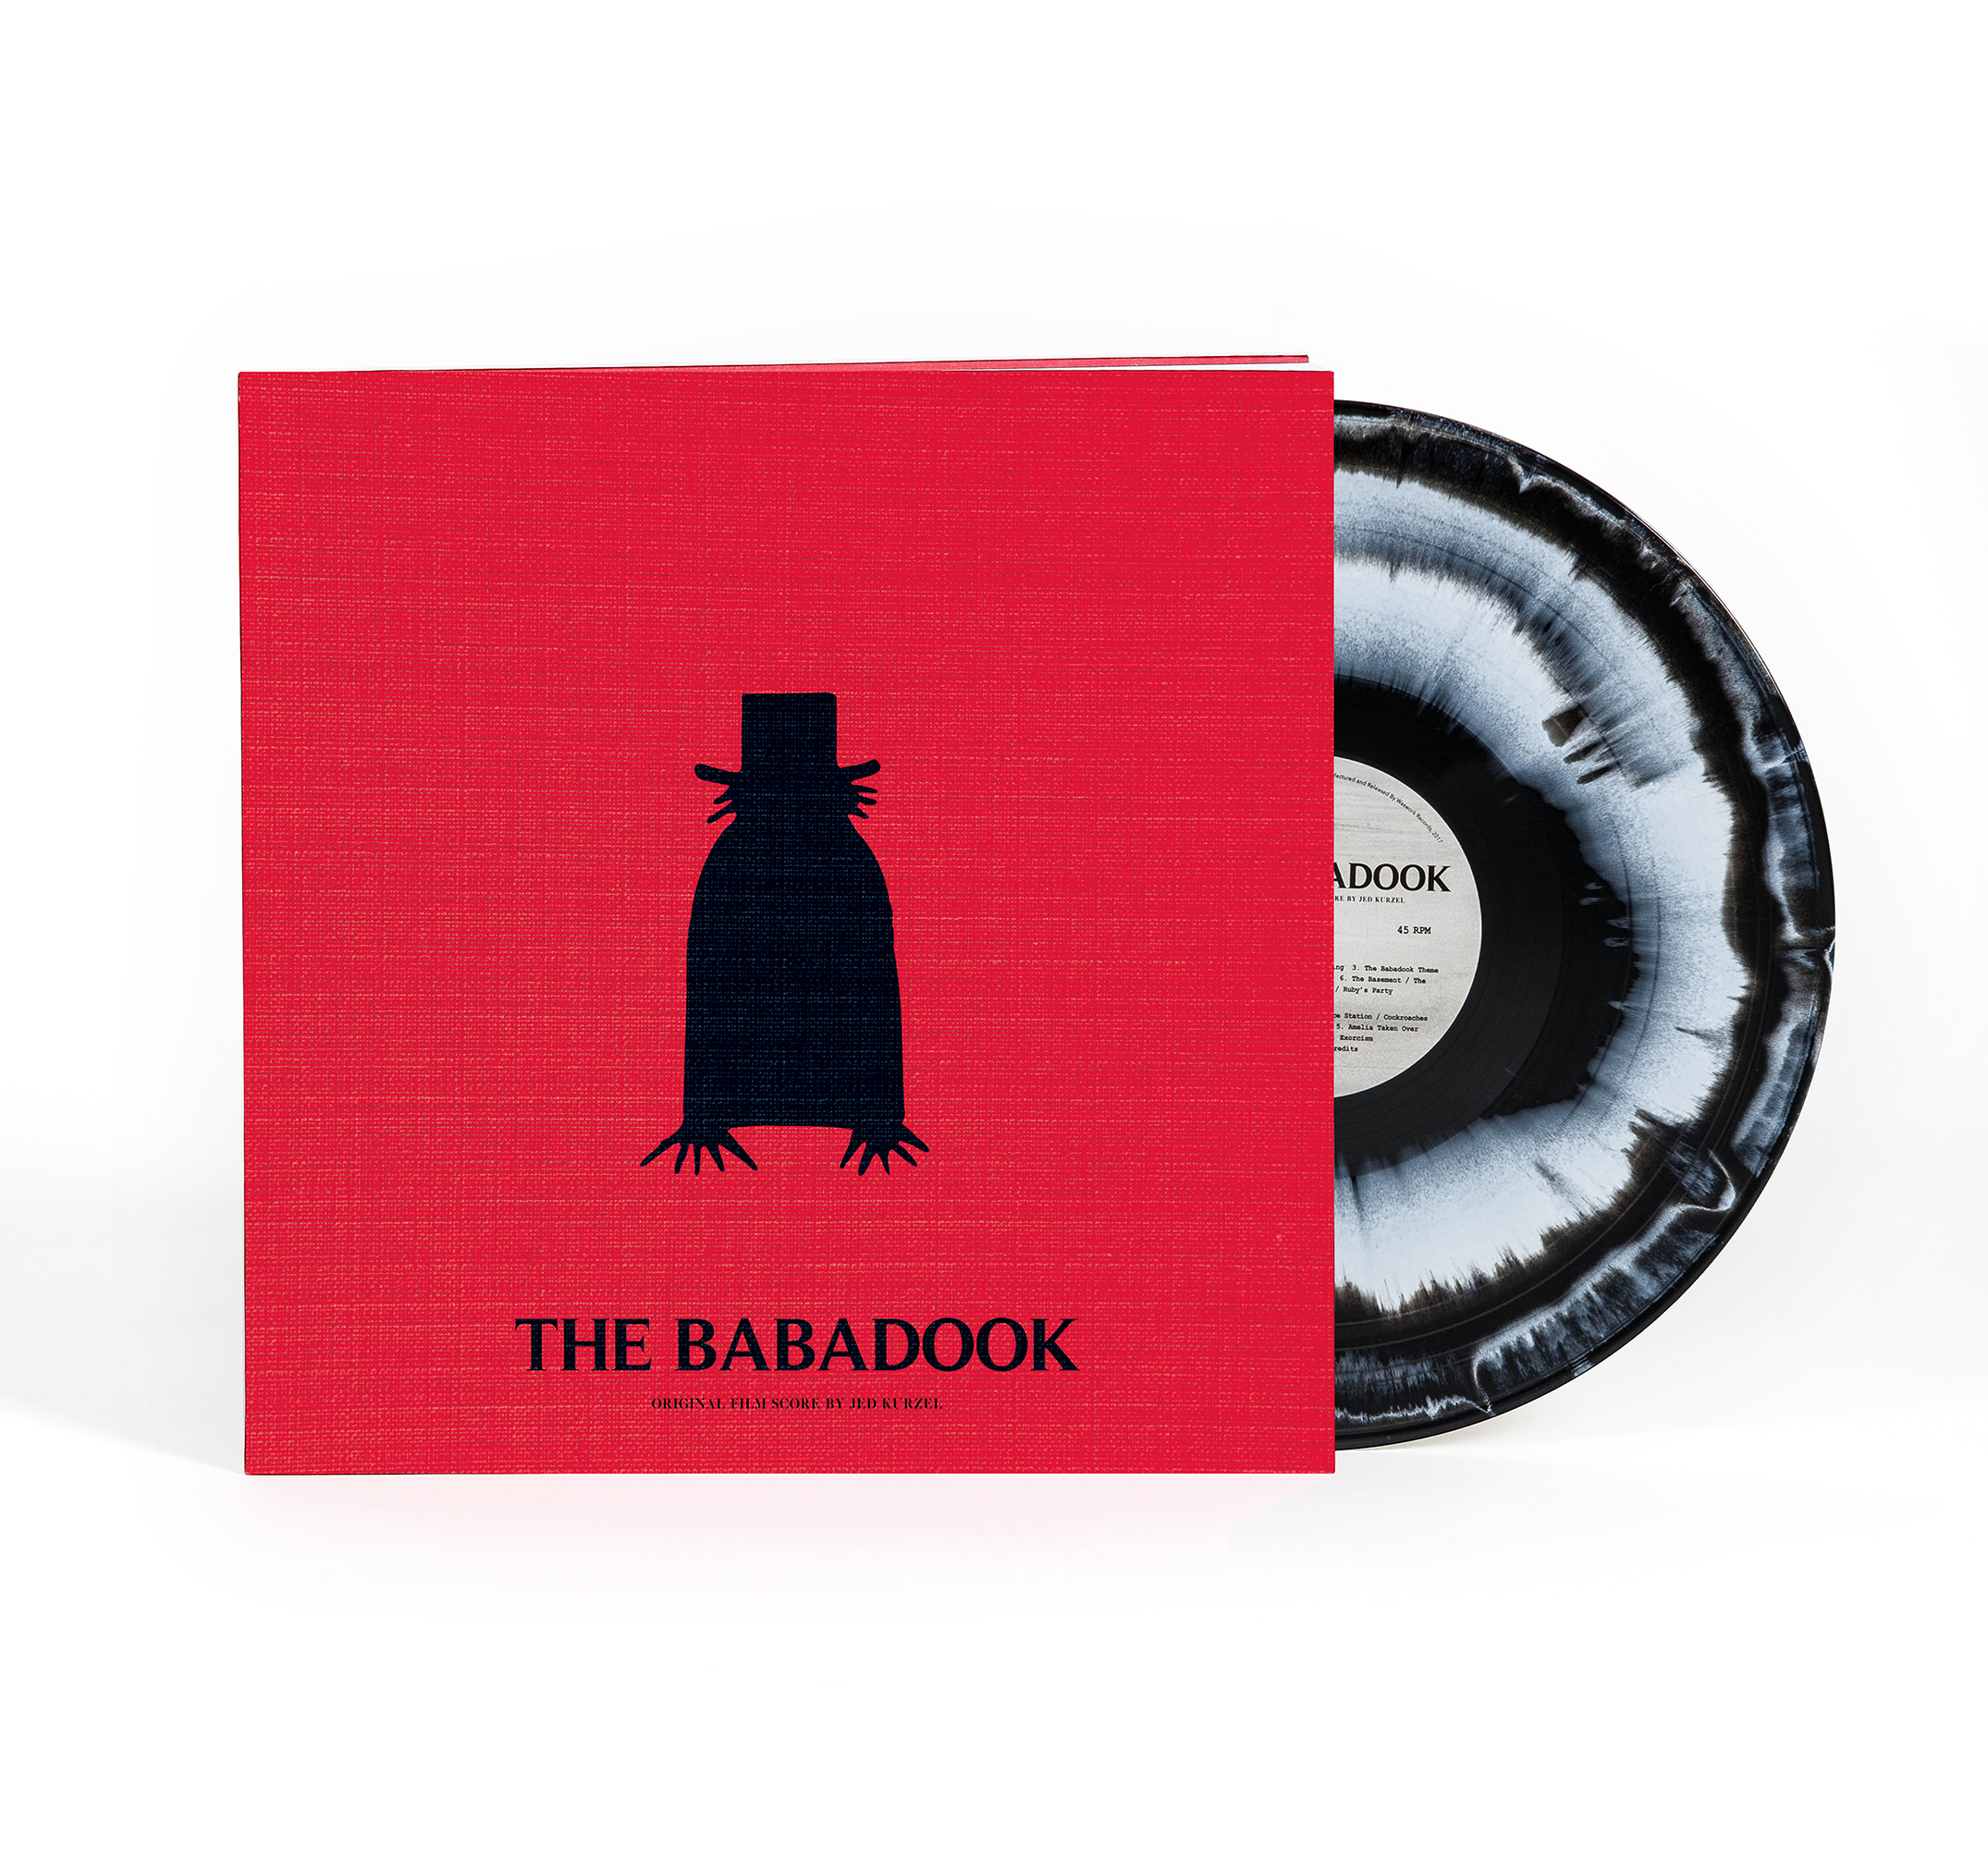 The Babadook (Original Soundtrack)